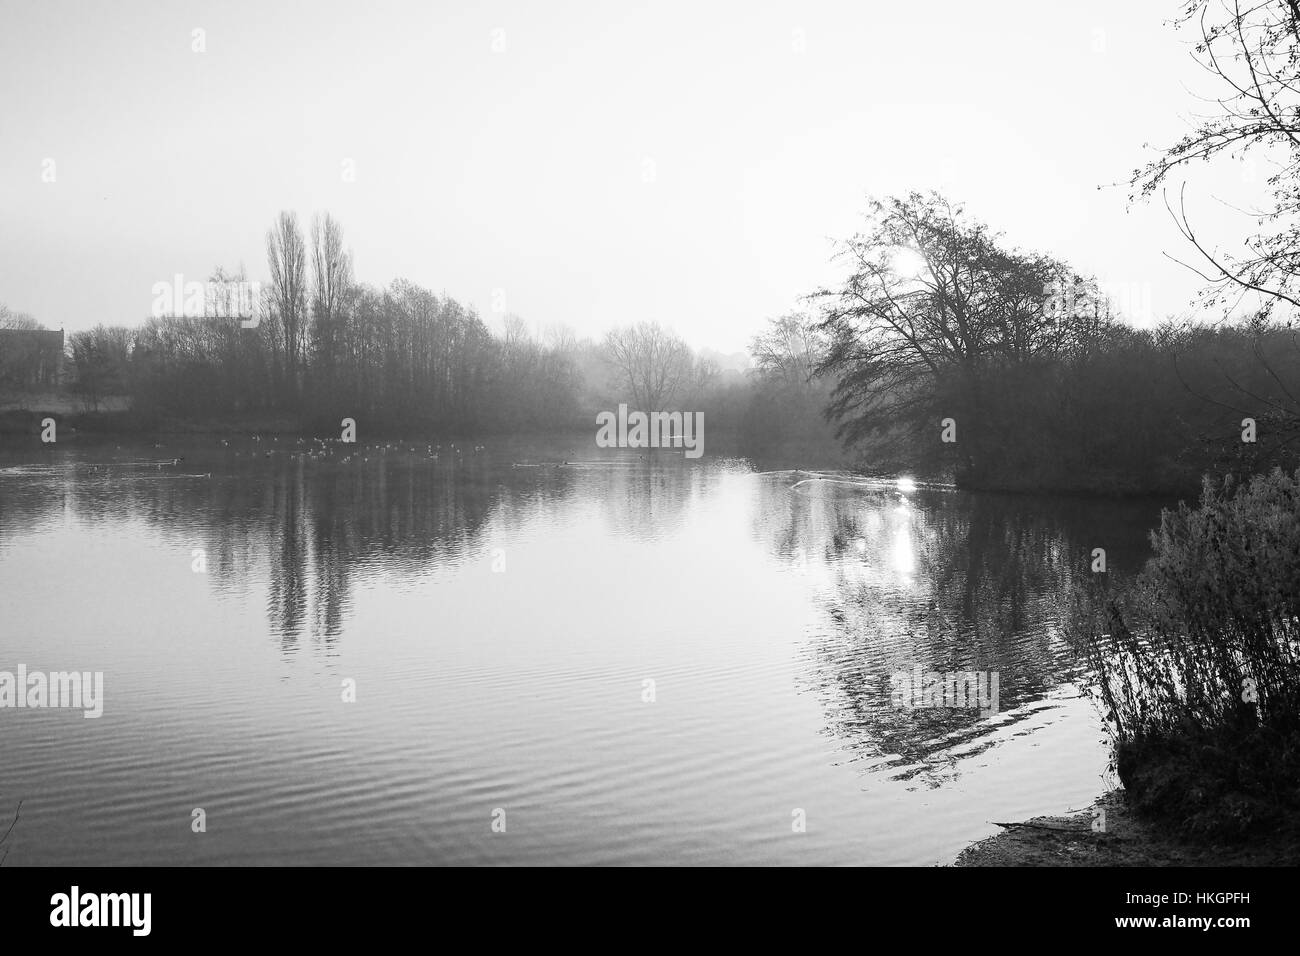 Mist lingers over a calm woodland lake on a cold winter morning - Stock Image